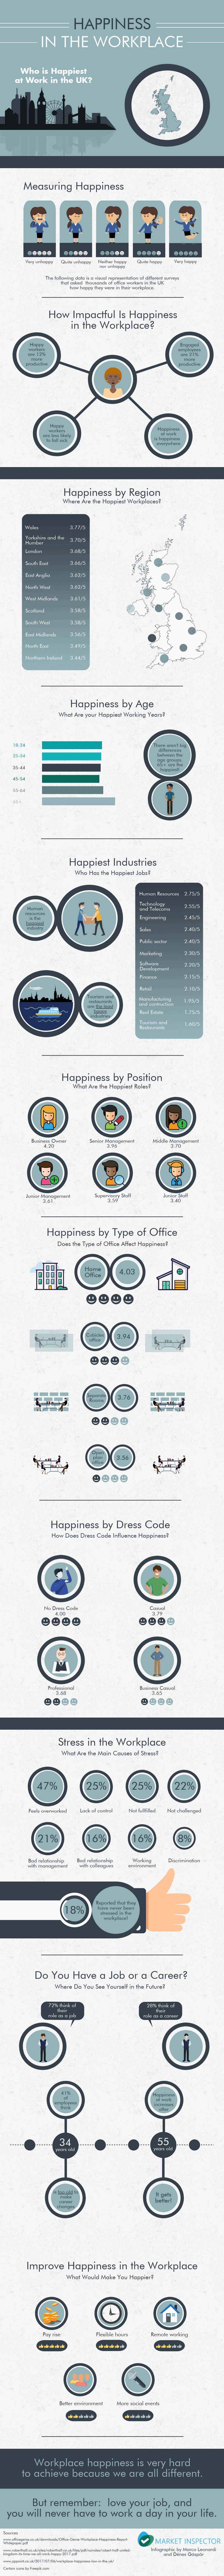 Happiness in the Workplace in the UK